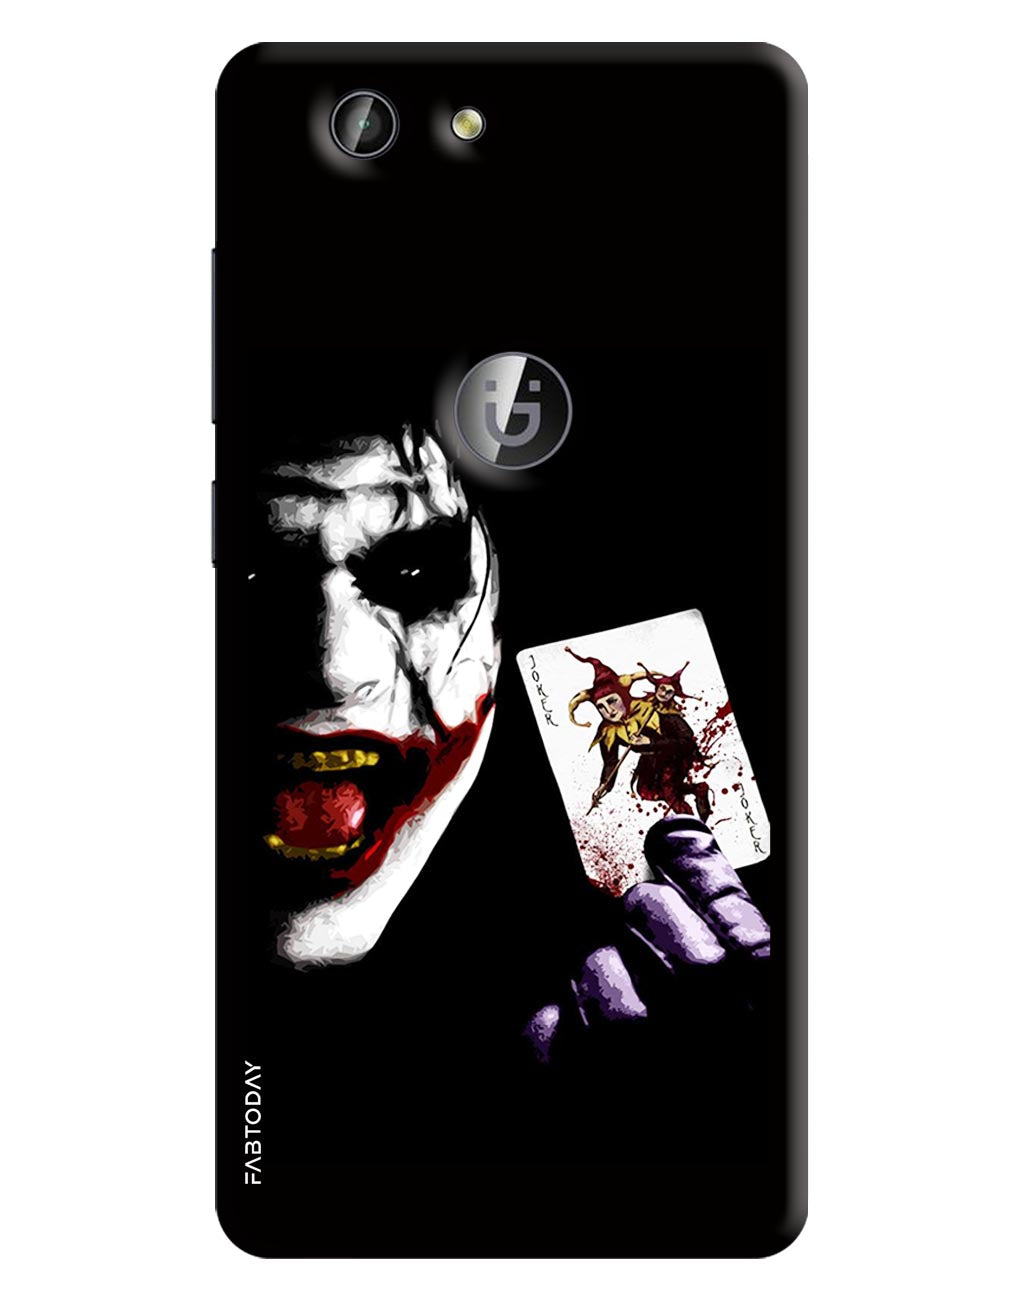 Joker Back Cover for Gionee F103 Pro